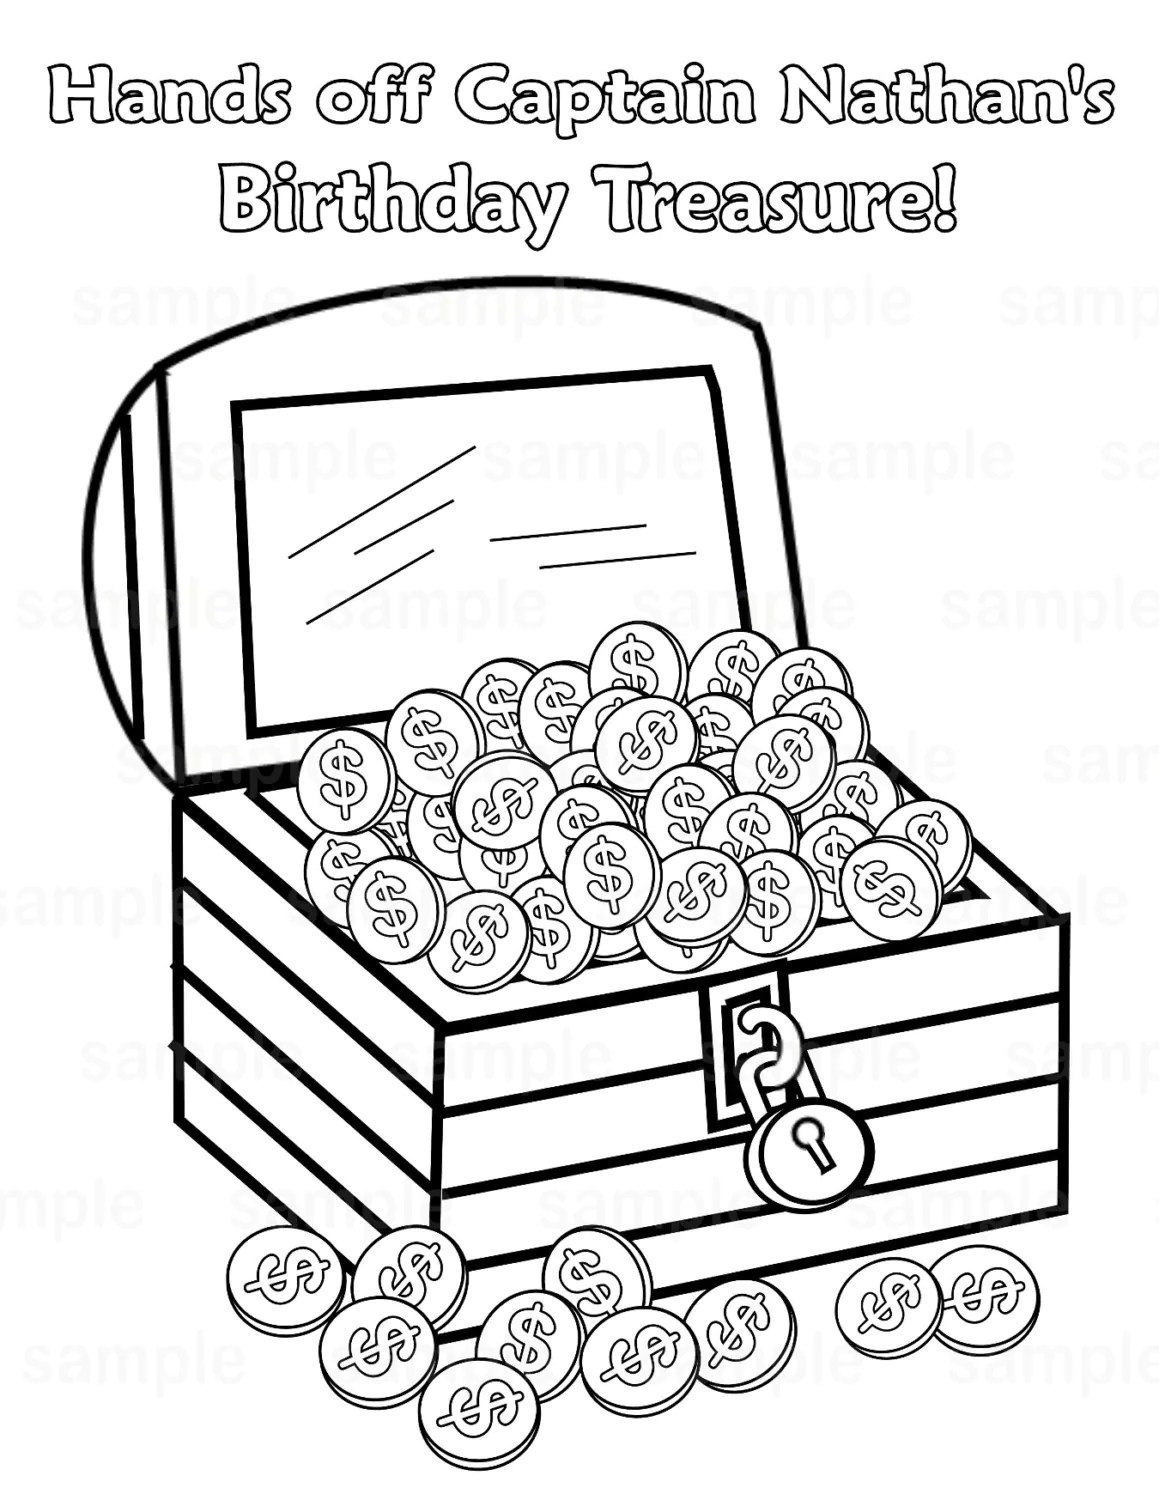 Personalized Printable Pirate Treasure Chest Birthday Party